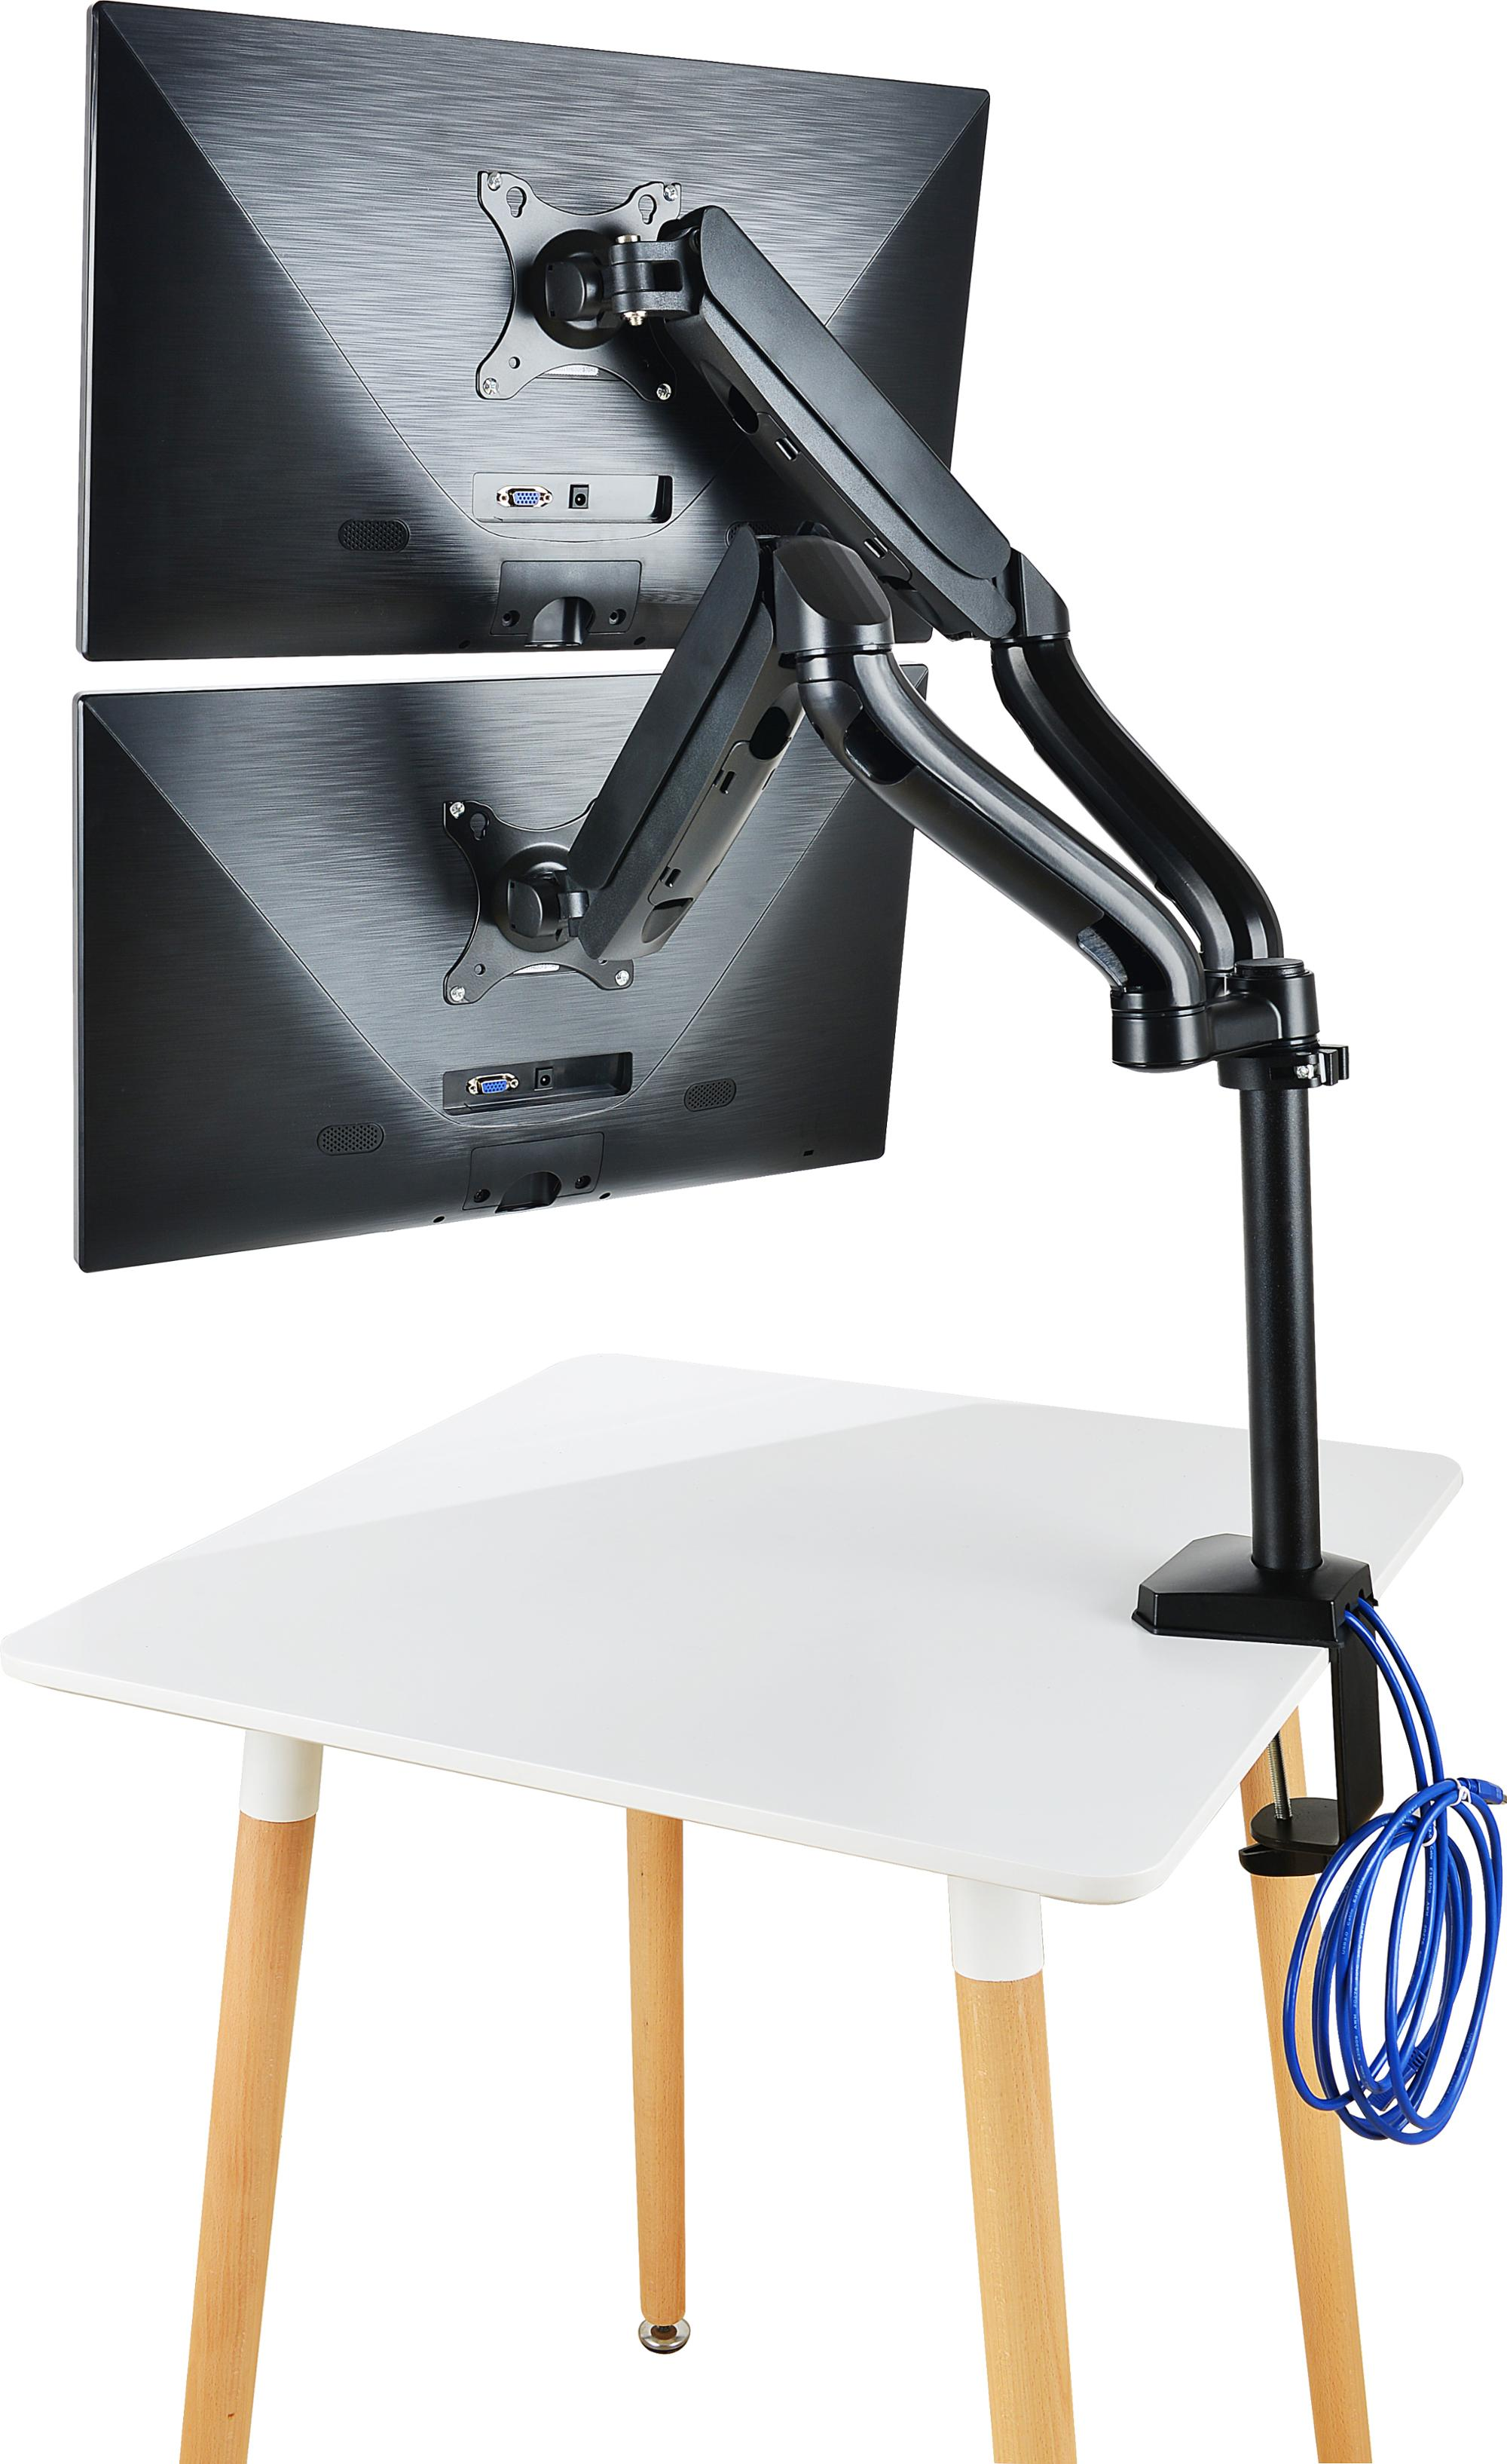 JLT Adjustable  360 Degrees Gas Sping   Aluminum LCD  Dual Monitor Arm Mount